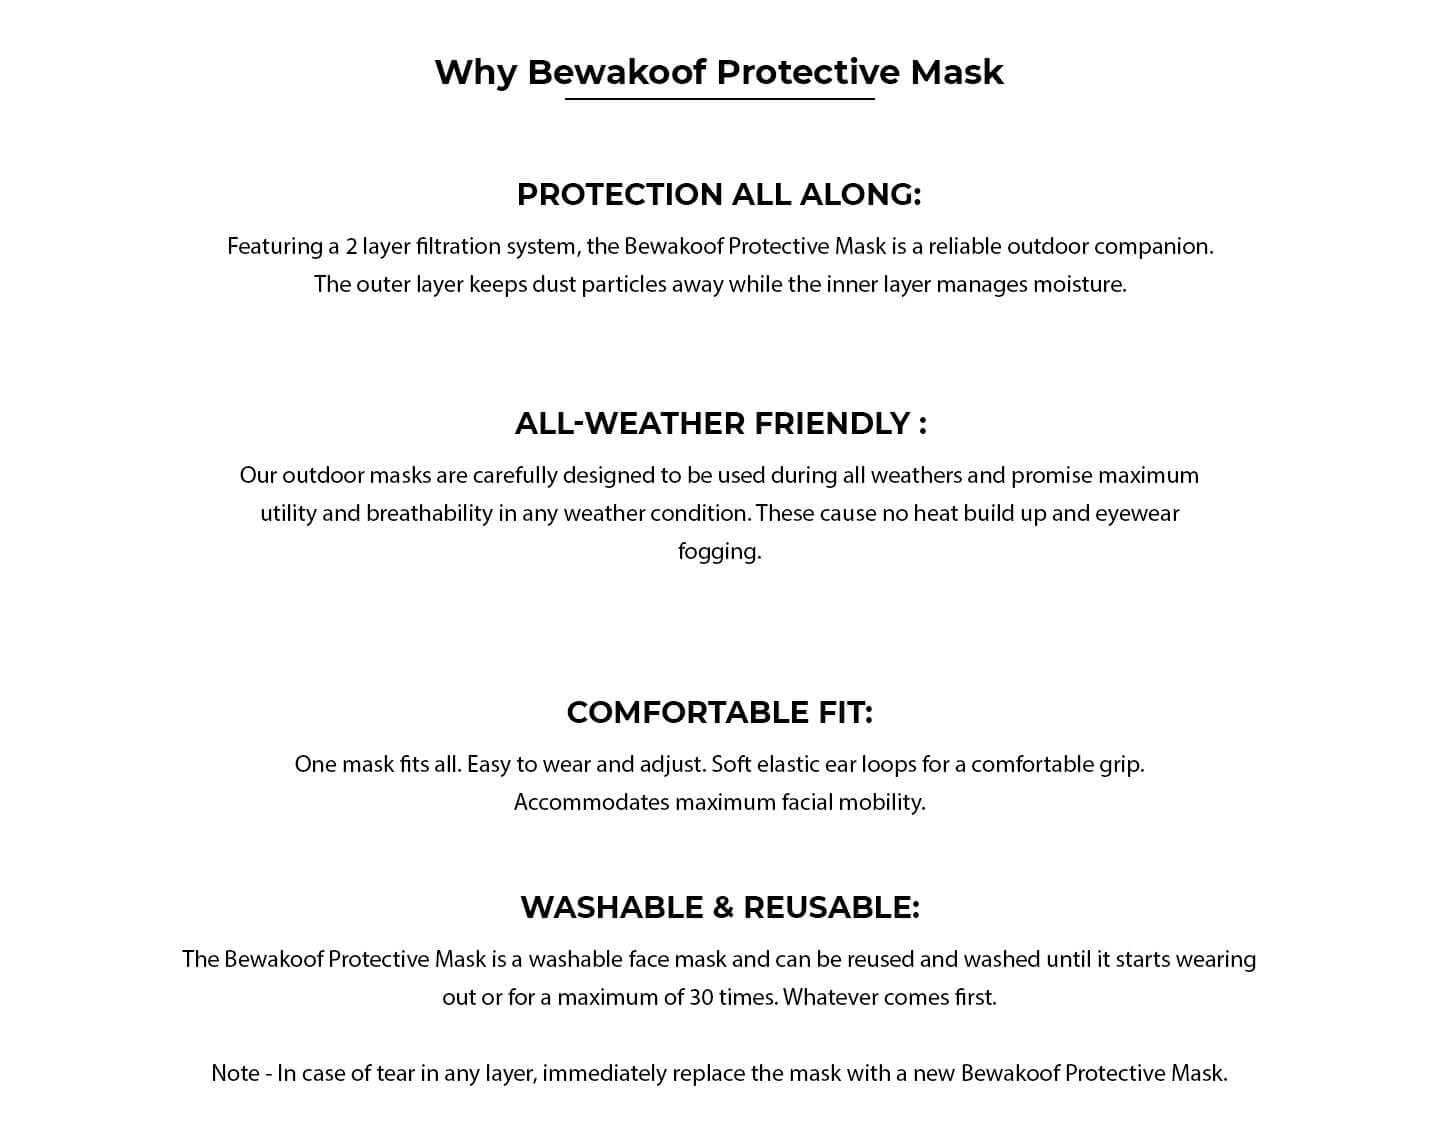 2-Layer Premium Protective Masks - Pack of 3 (White-Jet Black-White) Description Image Website 1@Bewakoof.com